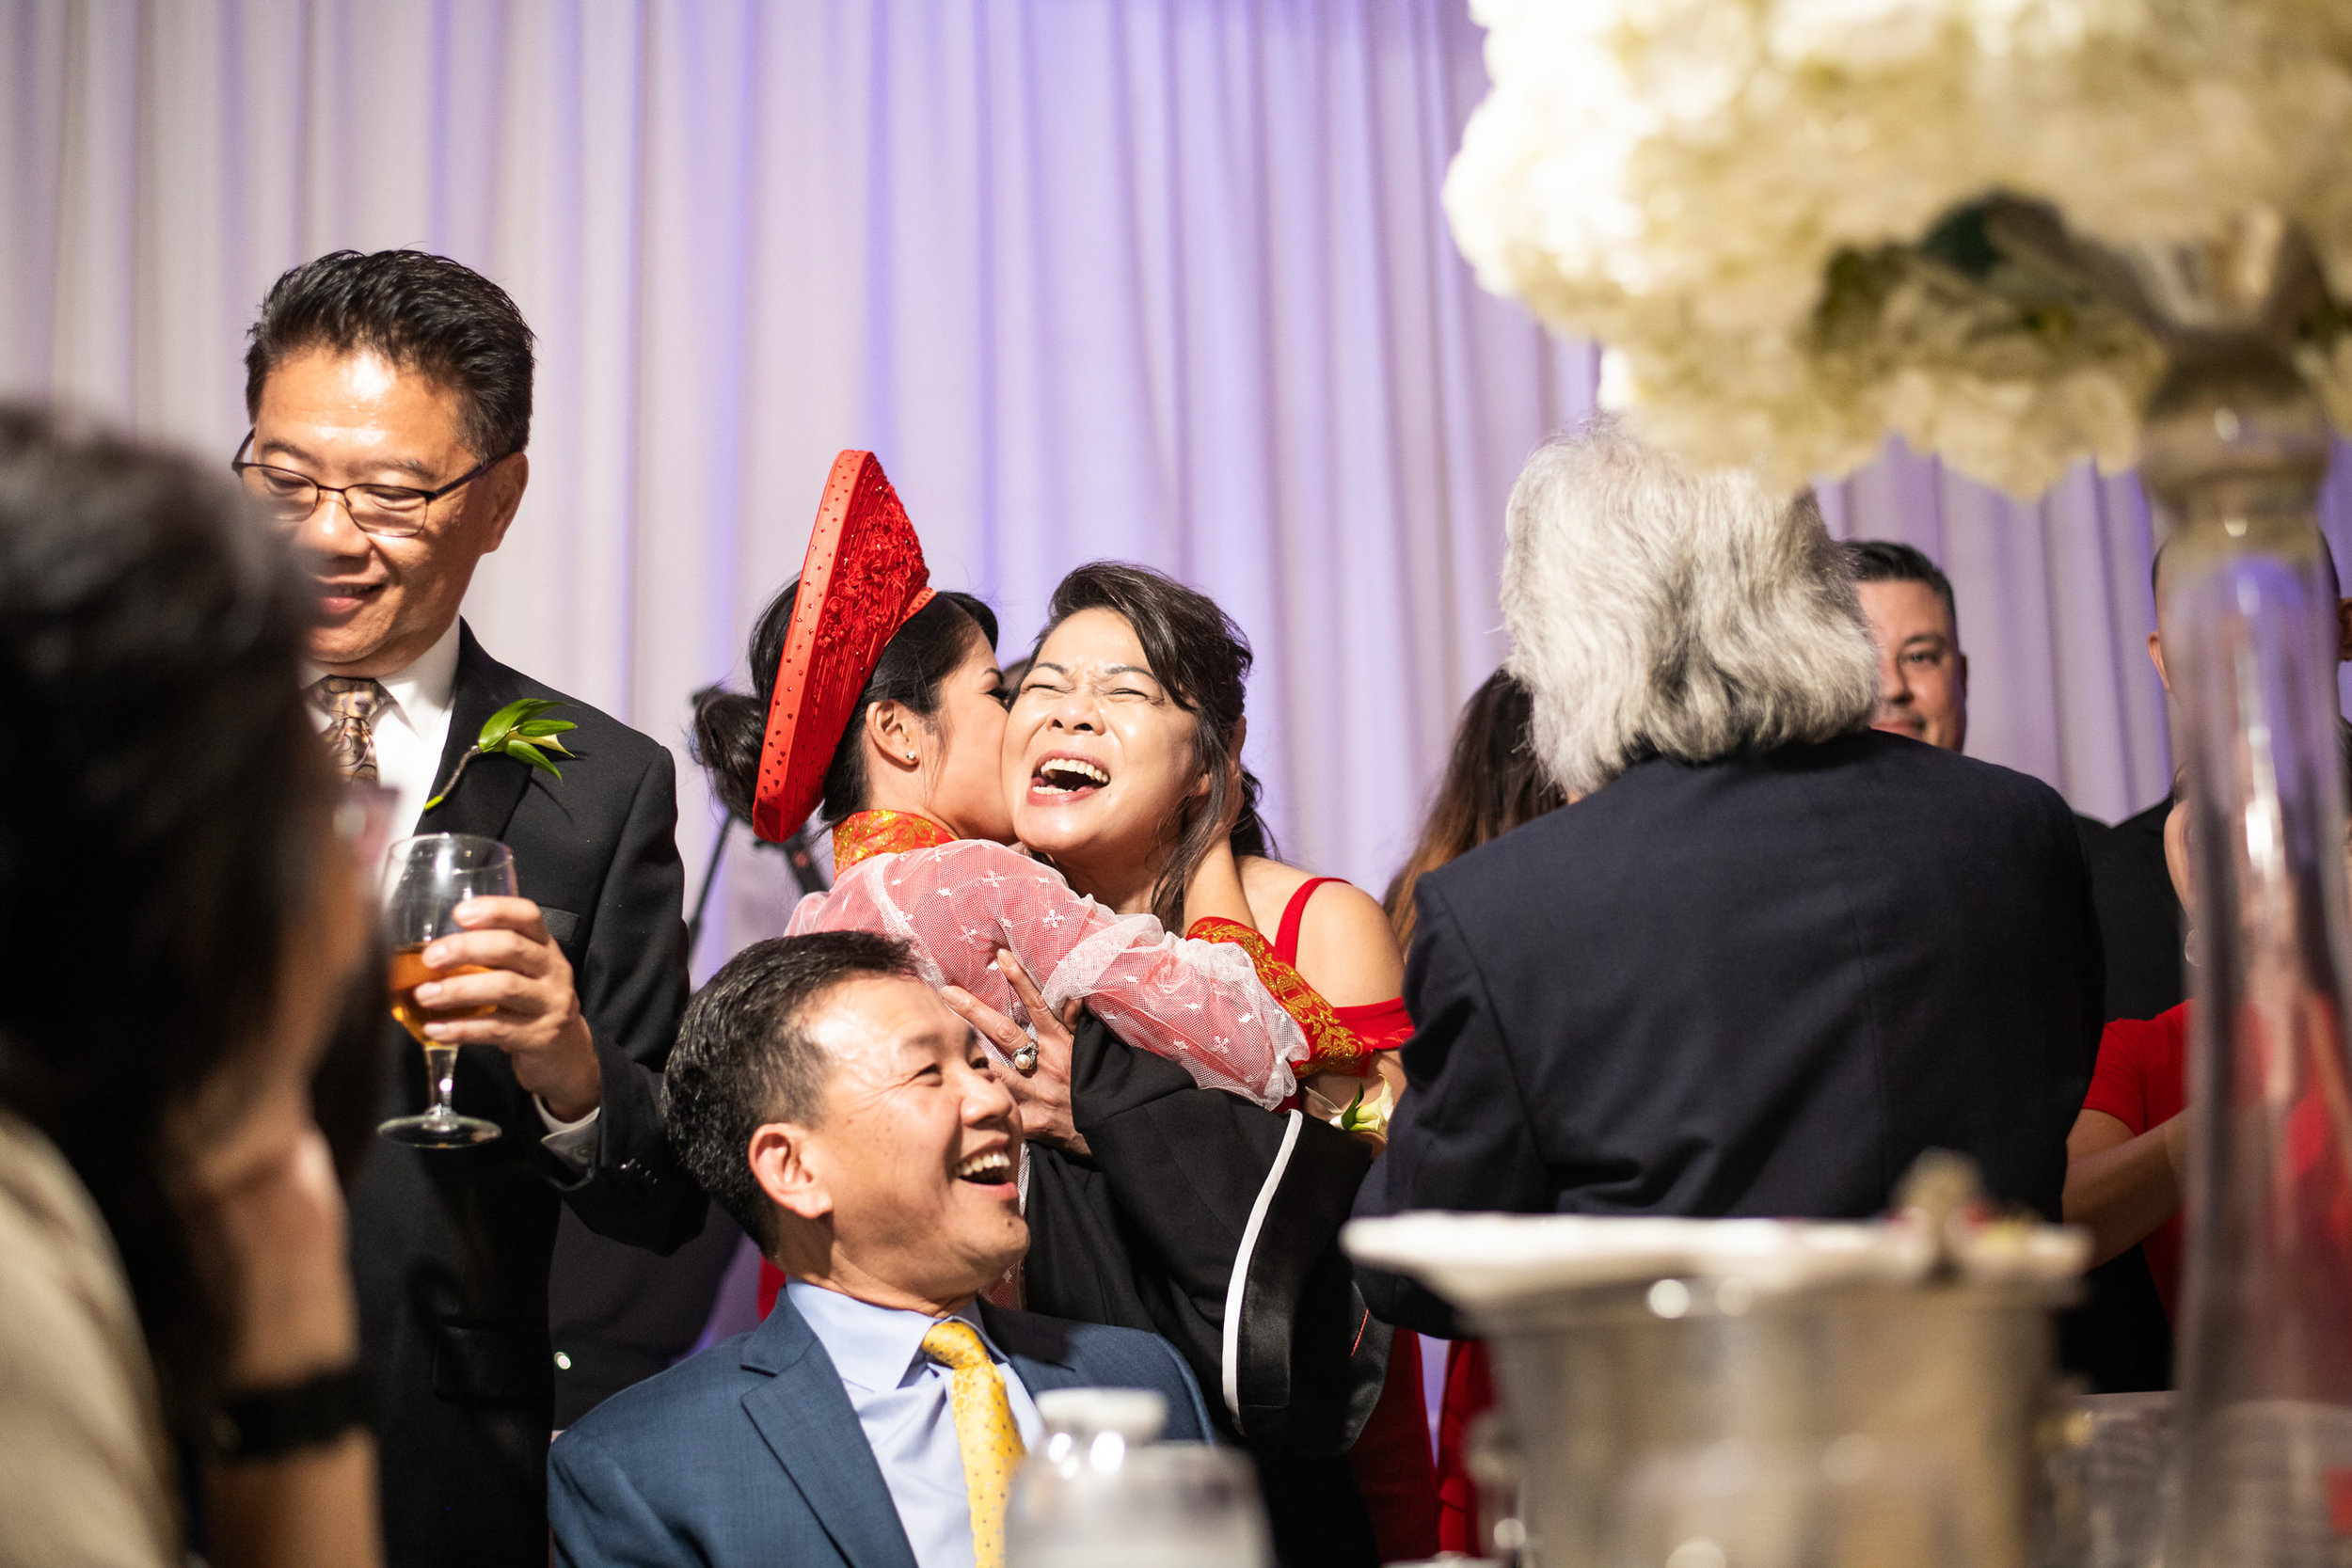 Dream_Wedding_Thanh_Thanh-3414.jpg